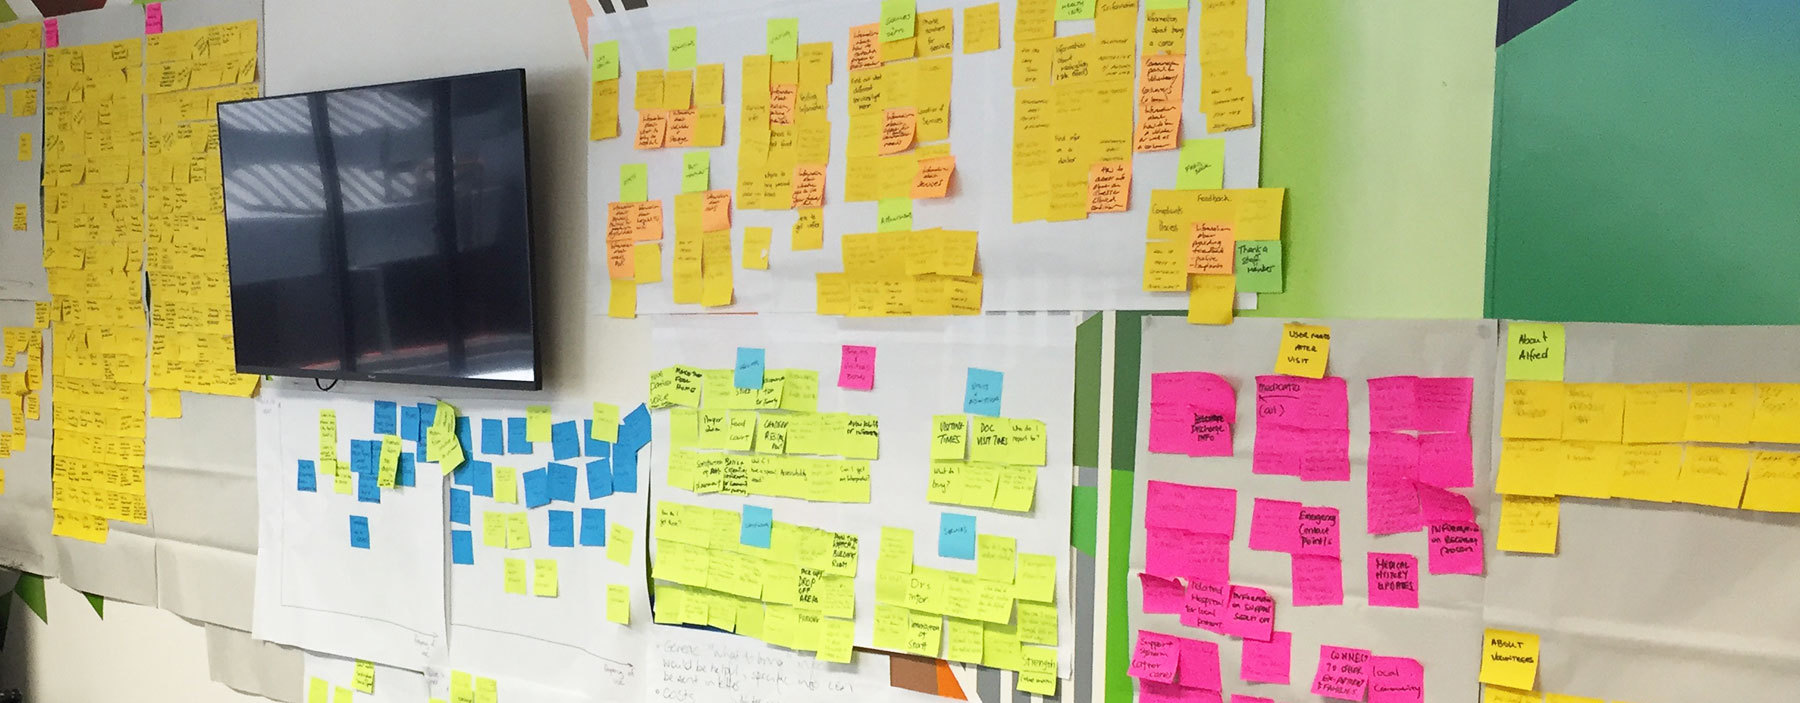 Outputs from a stakeholder workshop documenting user needs and goals